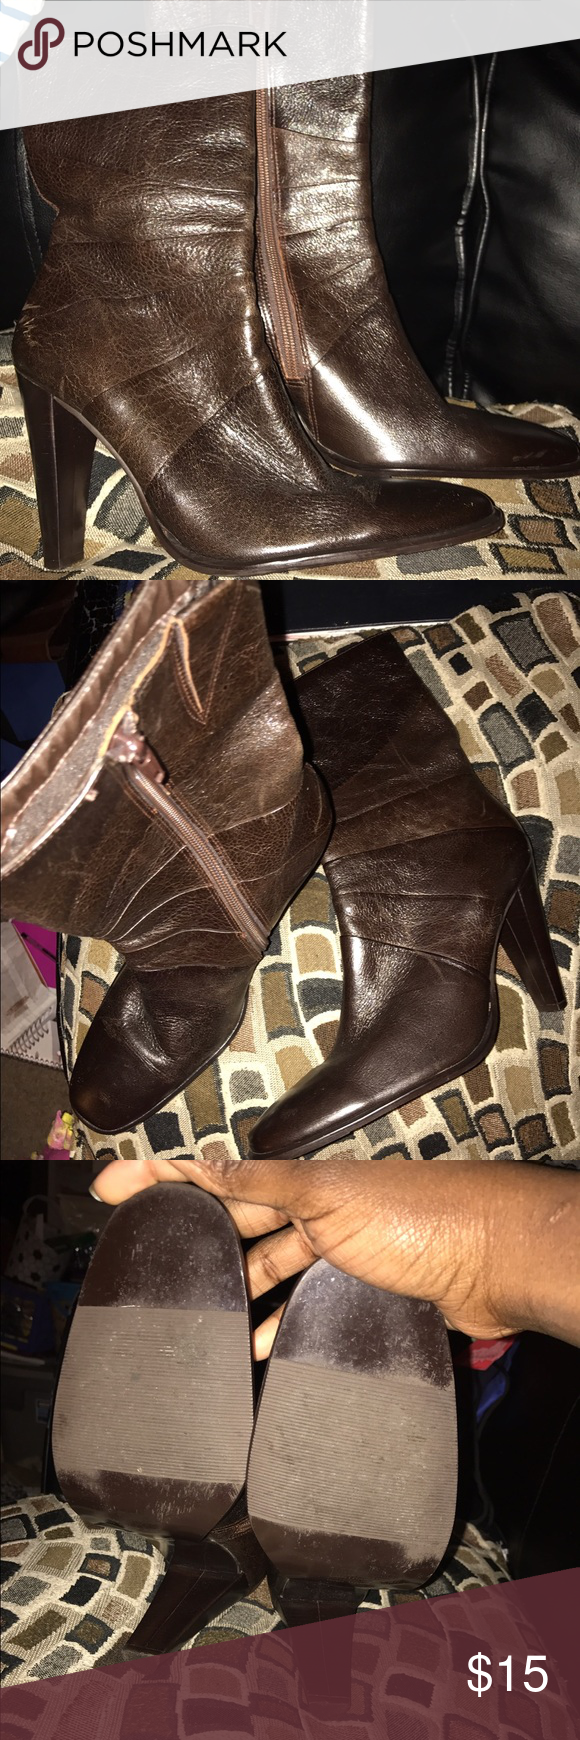 Chocolate Calf Boot A Rick dark brown calf boot, worn only once. There in excellent condition. Feet comfortably and easy to walk in. Goes well with jeans, skirt or dress! Shoes Heeled Boots